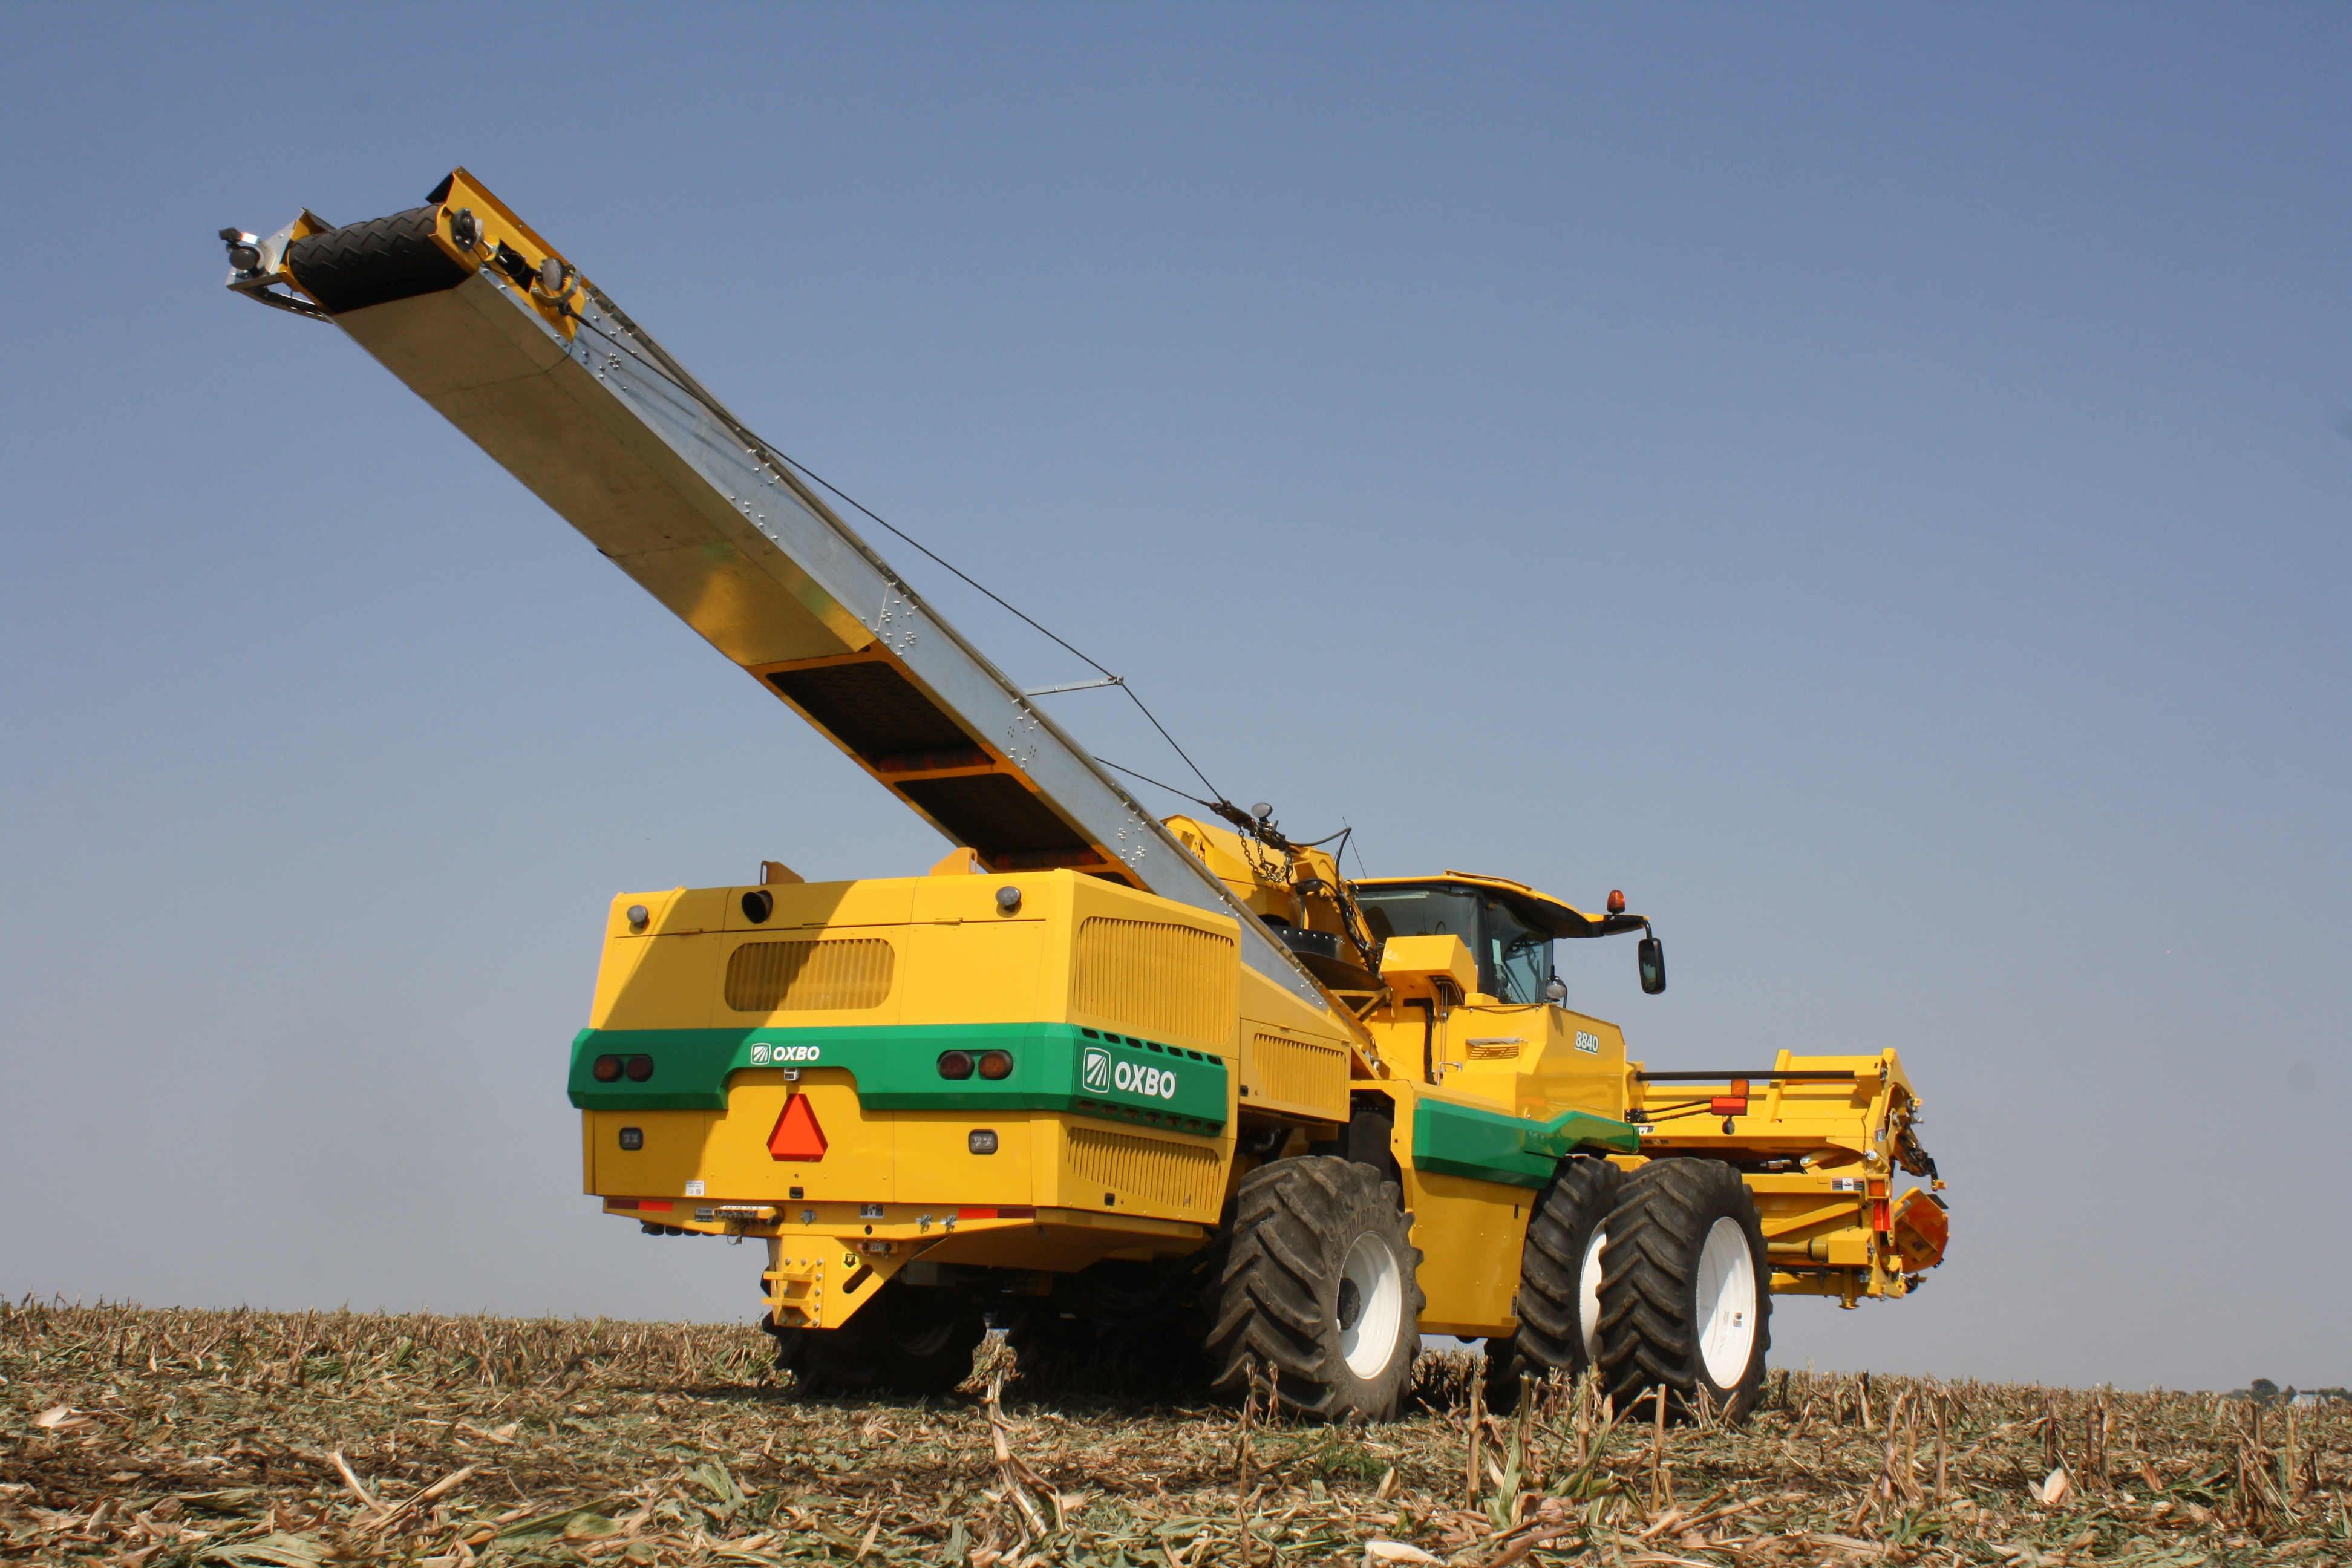 Oxbo 8840 Seed Corn Harvester Features and Benefits